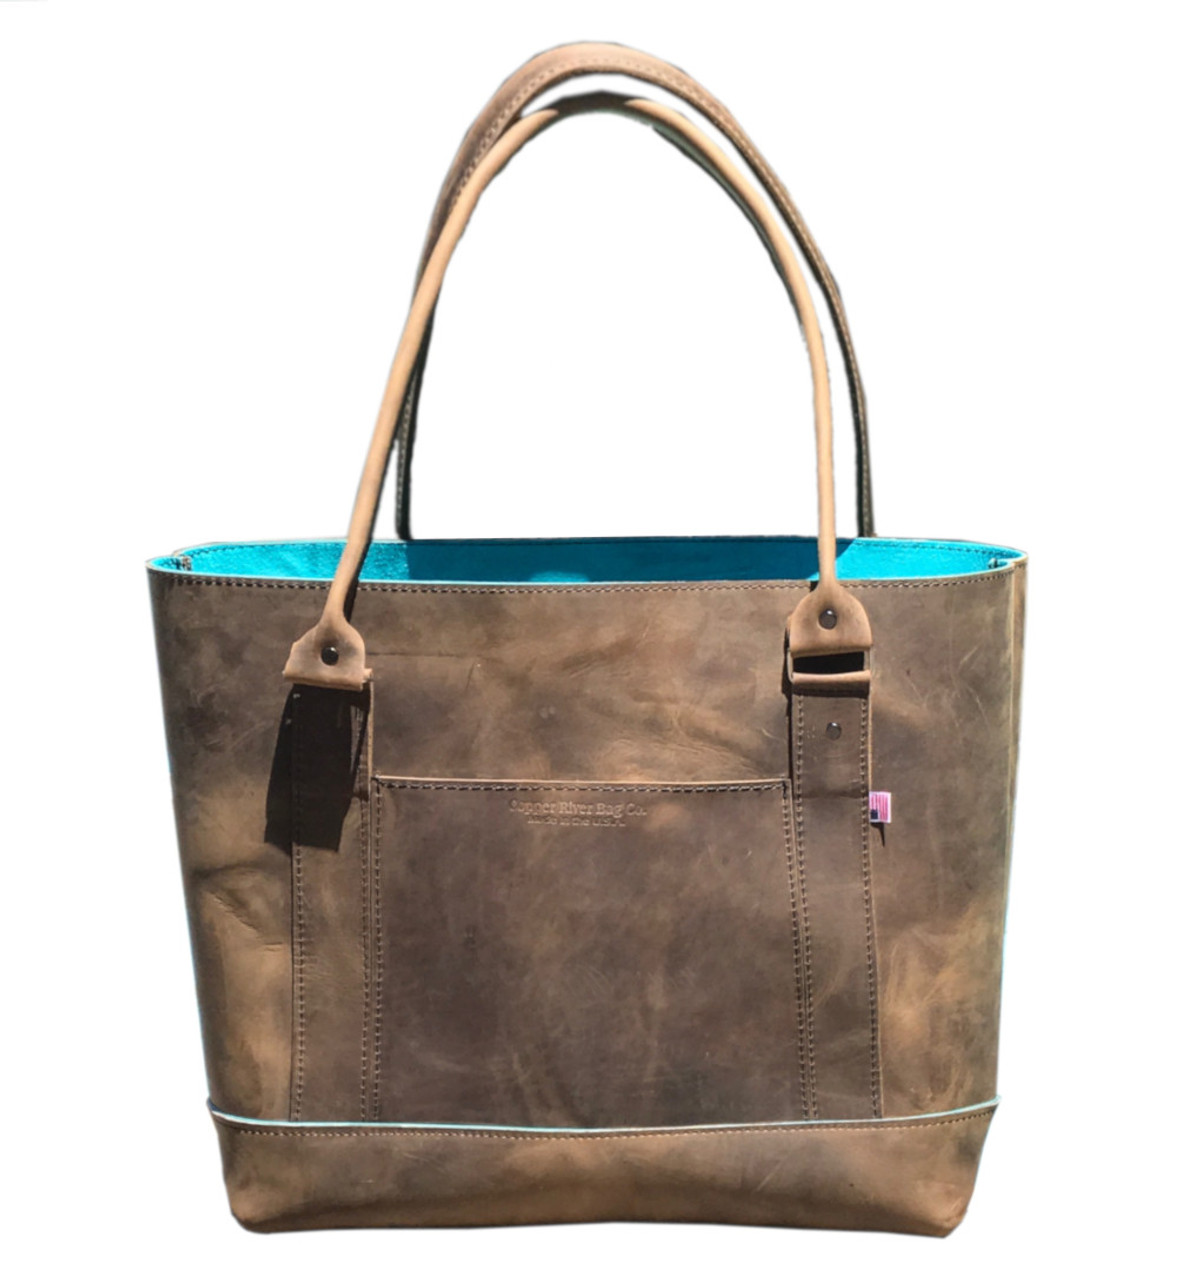 3258436121d Westfield Tote Bag - Distressed Oil Tanned Leather / Suede Lined